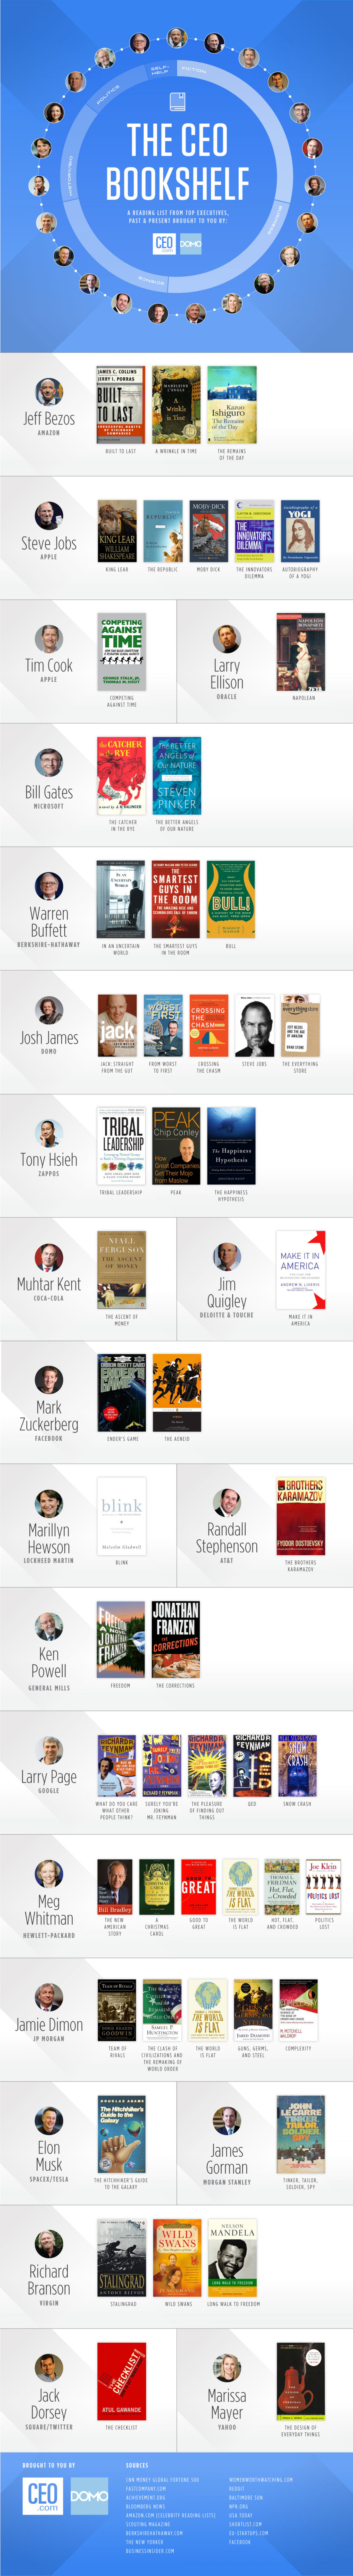 CEO books leadership management business Infographic